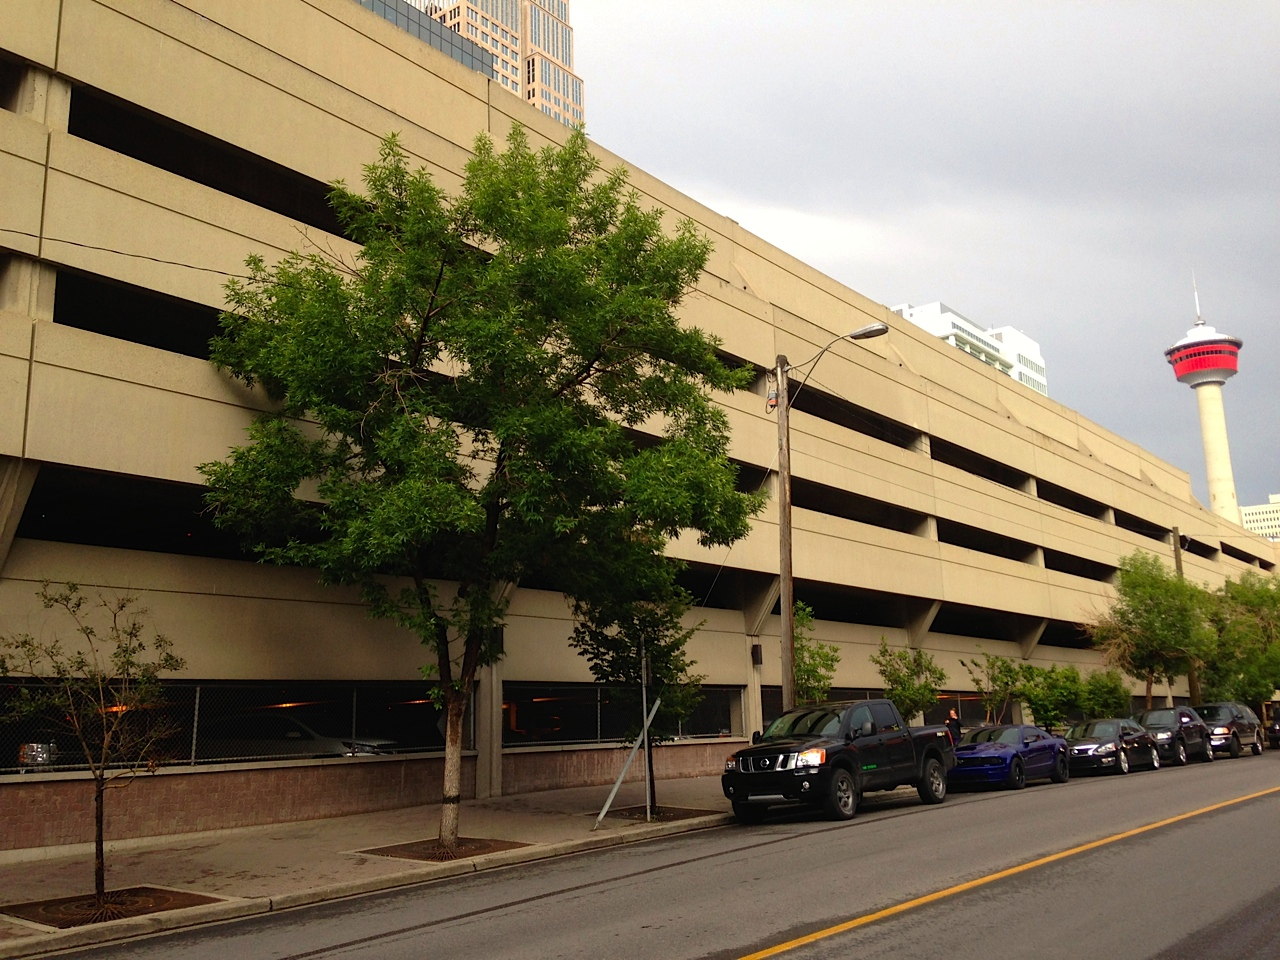 A view of the massive City Centre Parkade along north side of 10th Ave from 2nd to 4th Streets.